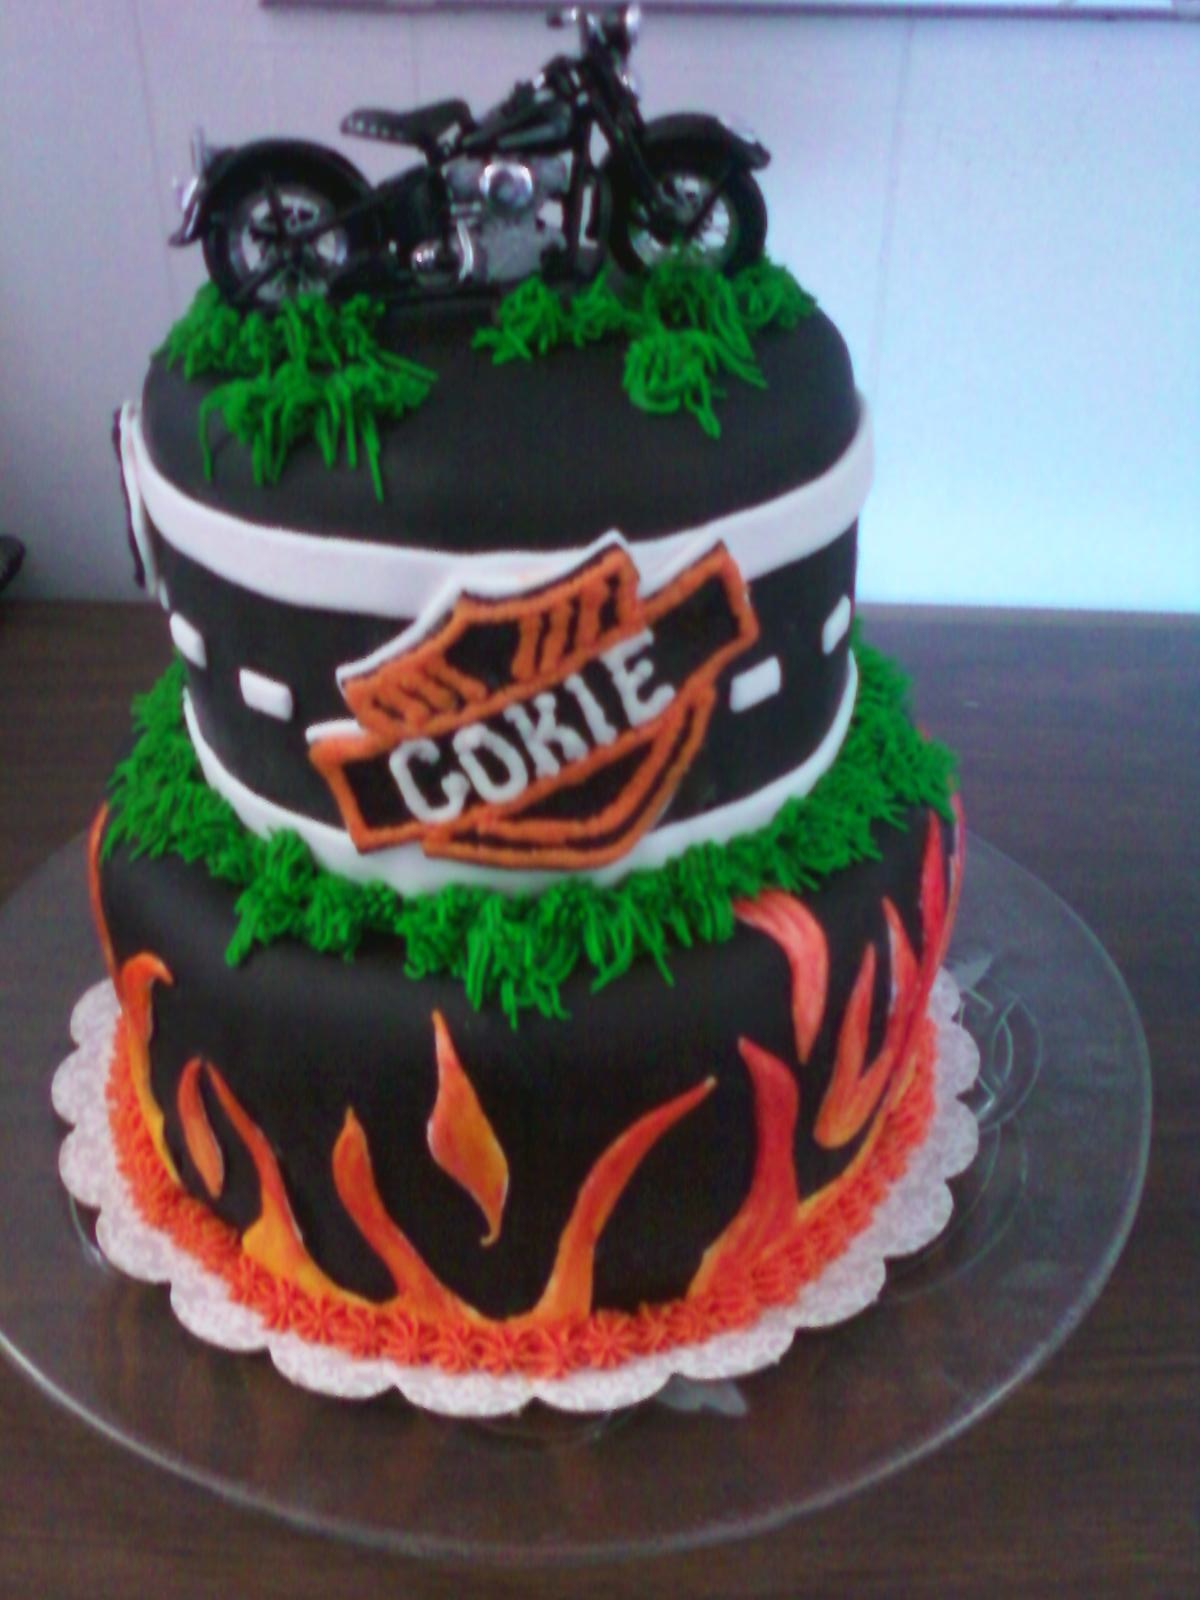 Baking Memories Harley Davidson Birthday Cake